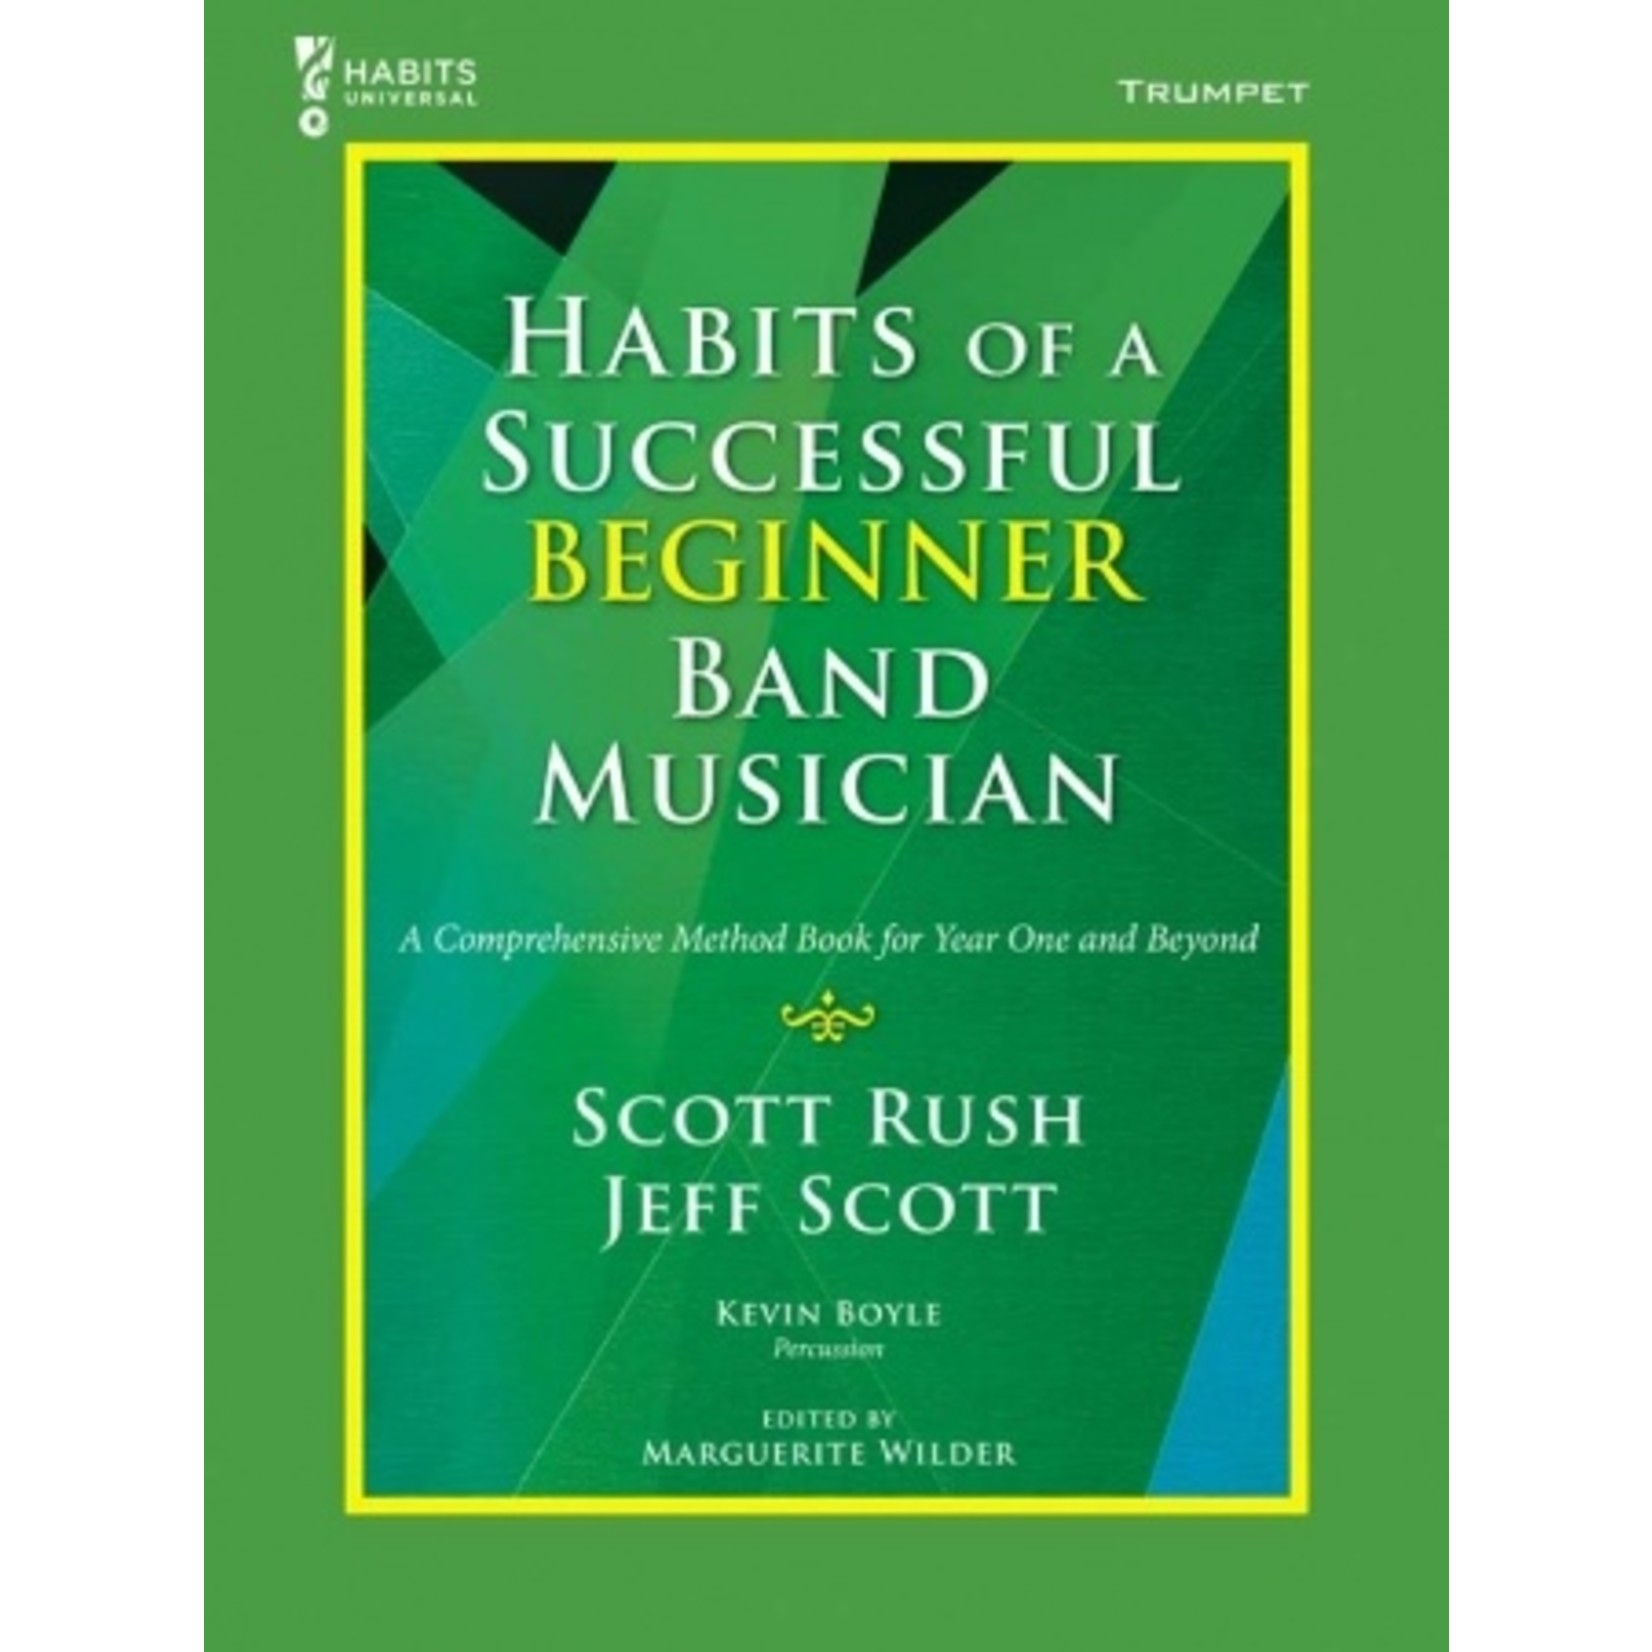 Habits of a Successful Beginner Band Musician - Trumpet